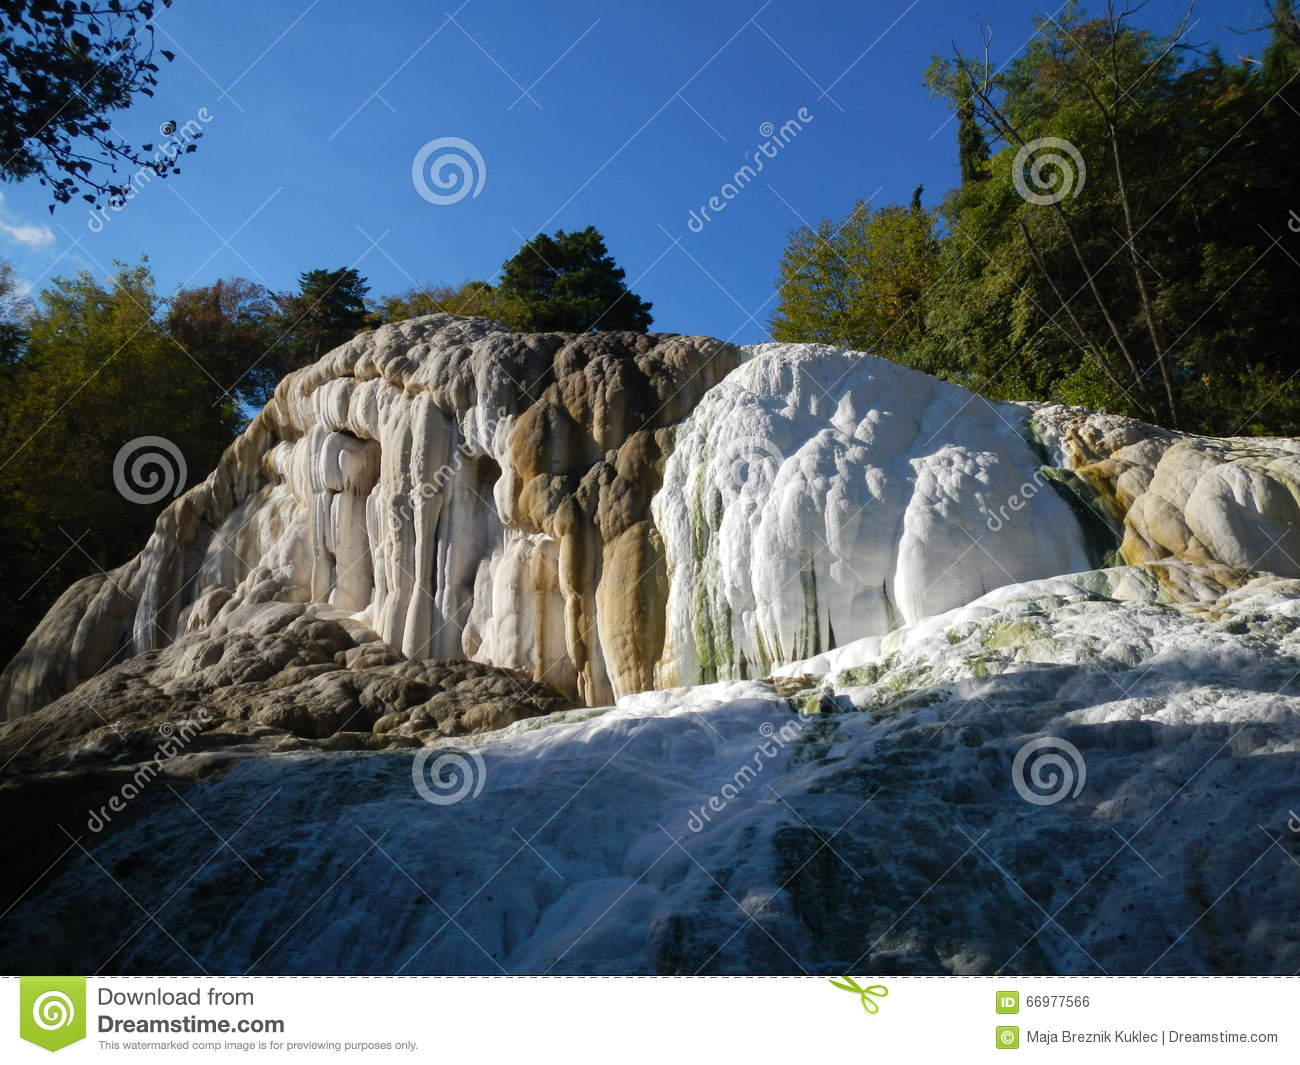 https://thumbs.dreamstime.com/z/fosso-bianco-near-bagni-di-san-filippo-natural-hot-springs-tuscany-italy-tuscany-more-than-just-florence-leaning-66977566.jpg